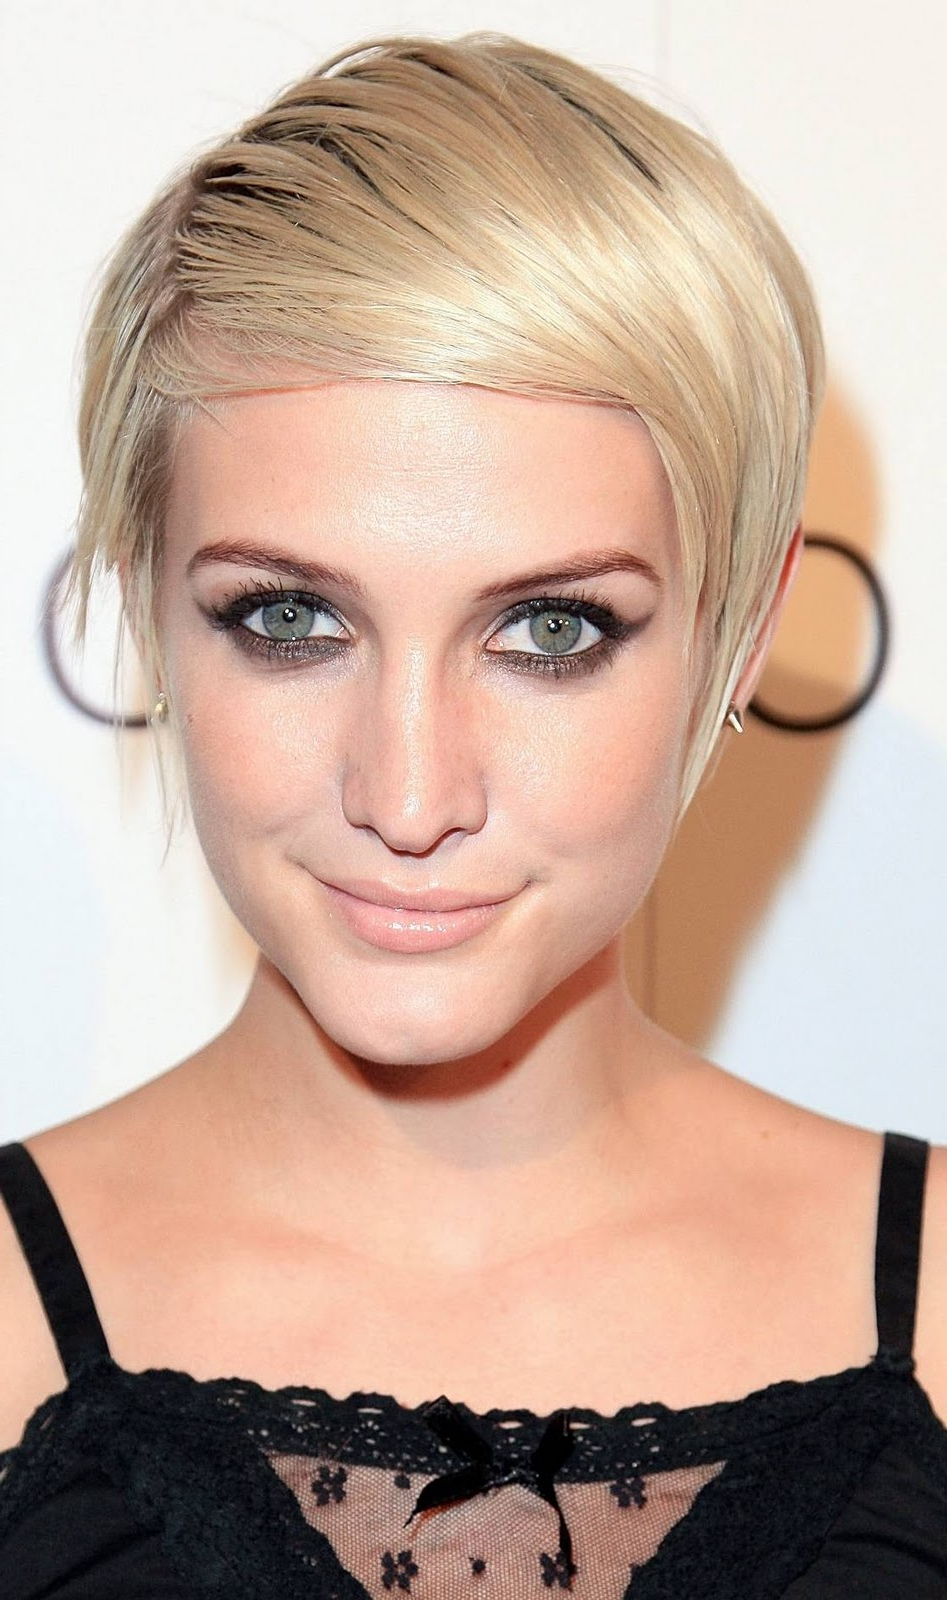 Ashlee Simpson New Pixie Hairstyle Look With Her Son | Angled Bob For Ashlee Simpson Short Hairstyles (Gallery 9 of 25)